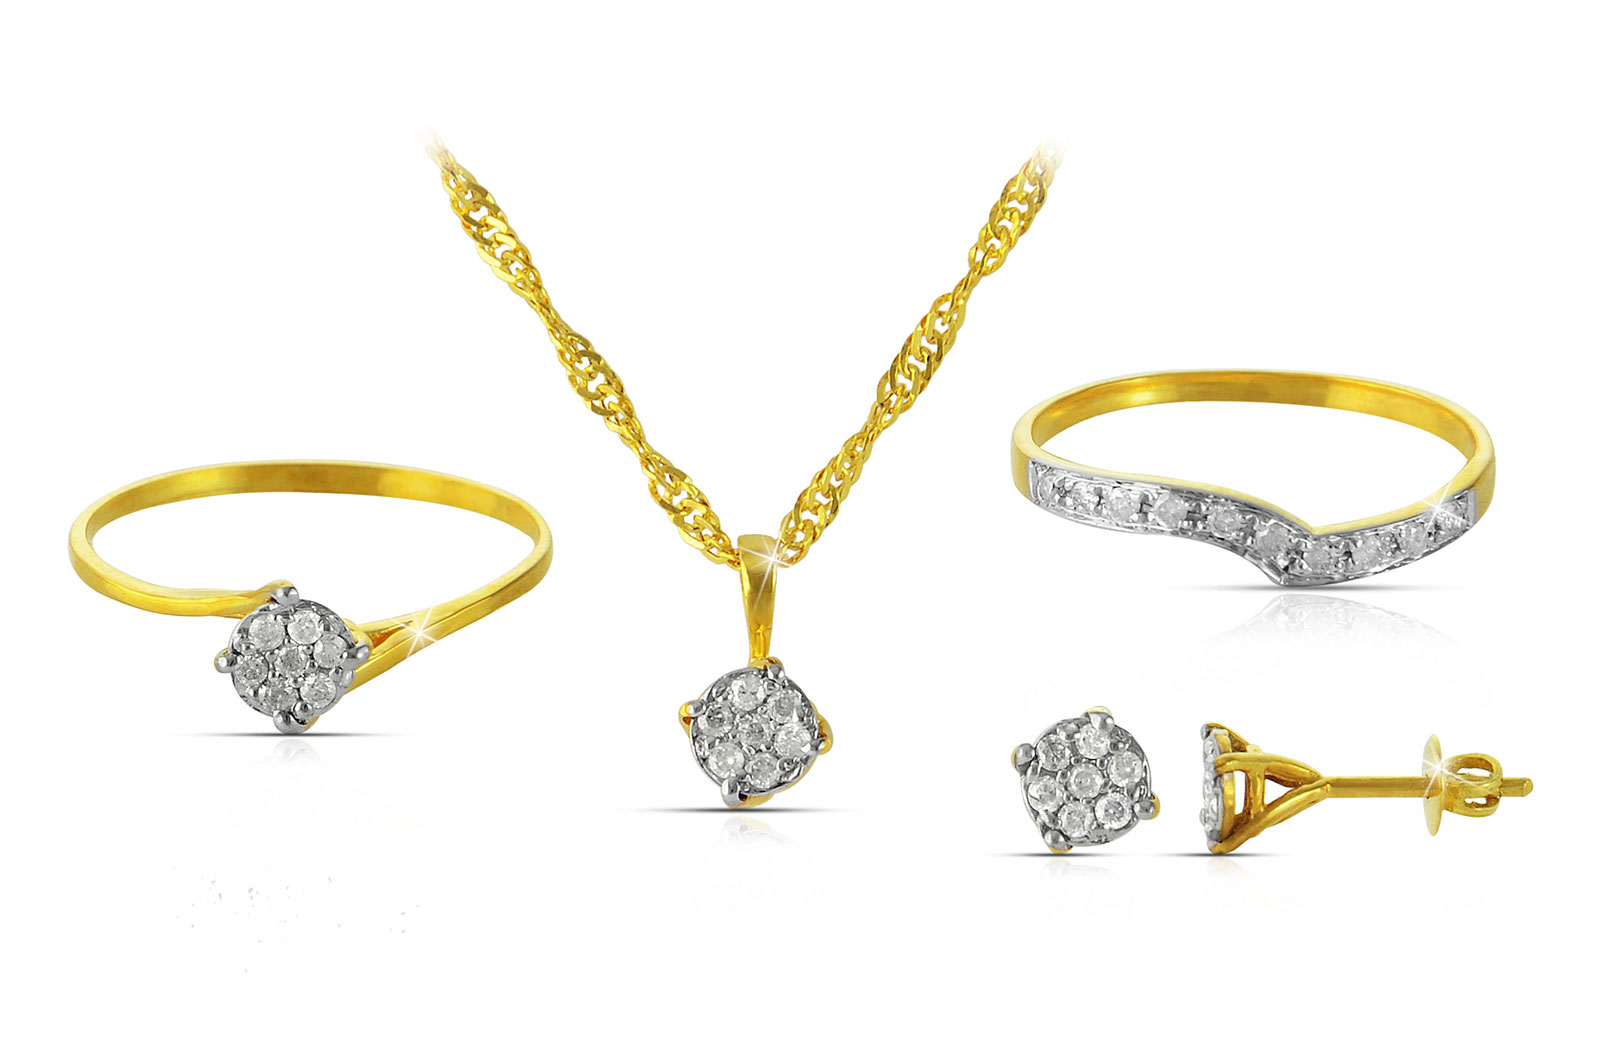 Vera Perla 18K Solid Yellow Gold 0.07Cts Genuine Diamonds Twisted Solitaire Necklace +Earrings Set